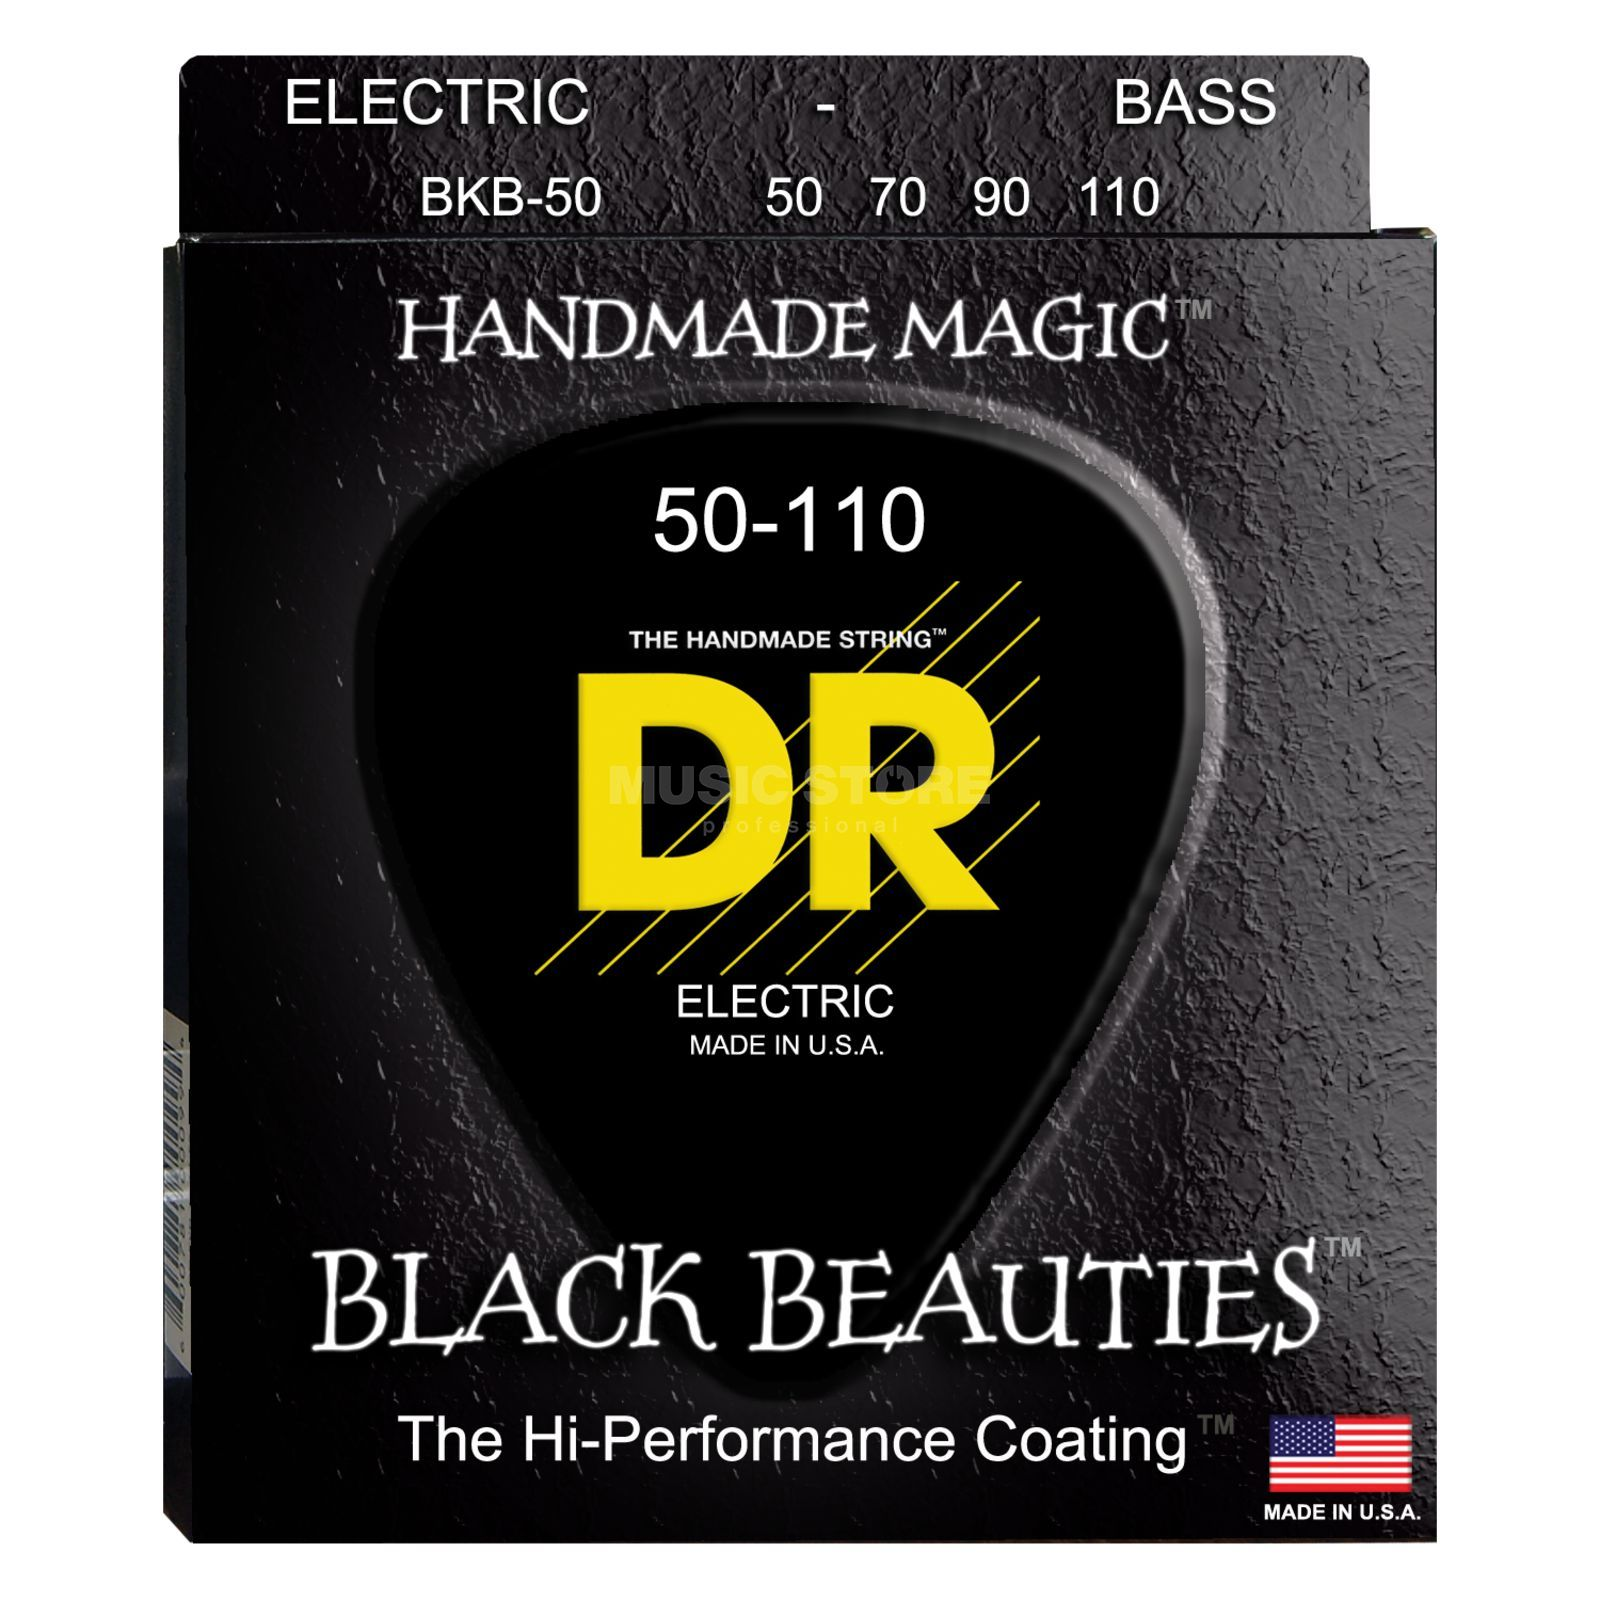 DR 4er Bass 50-110 Extra-Life Black Beauties BKB-50 Product Image